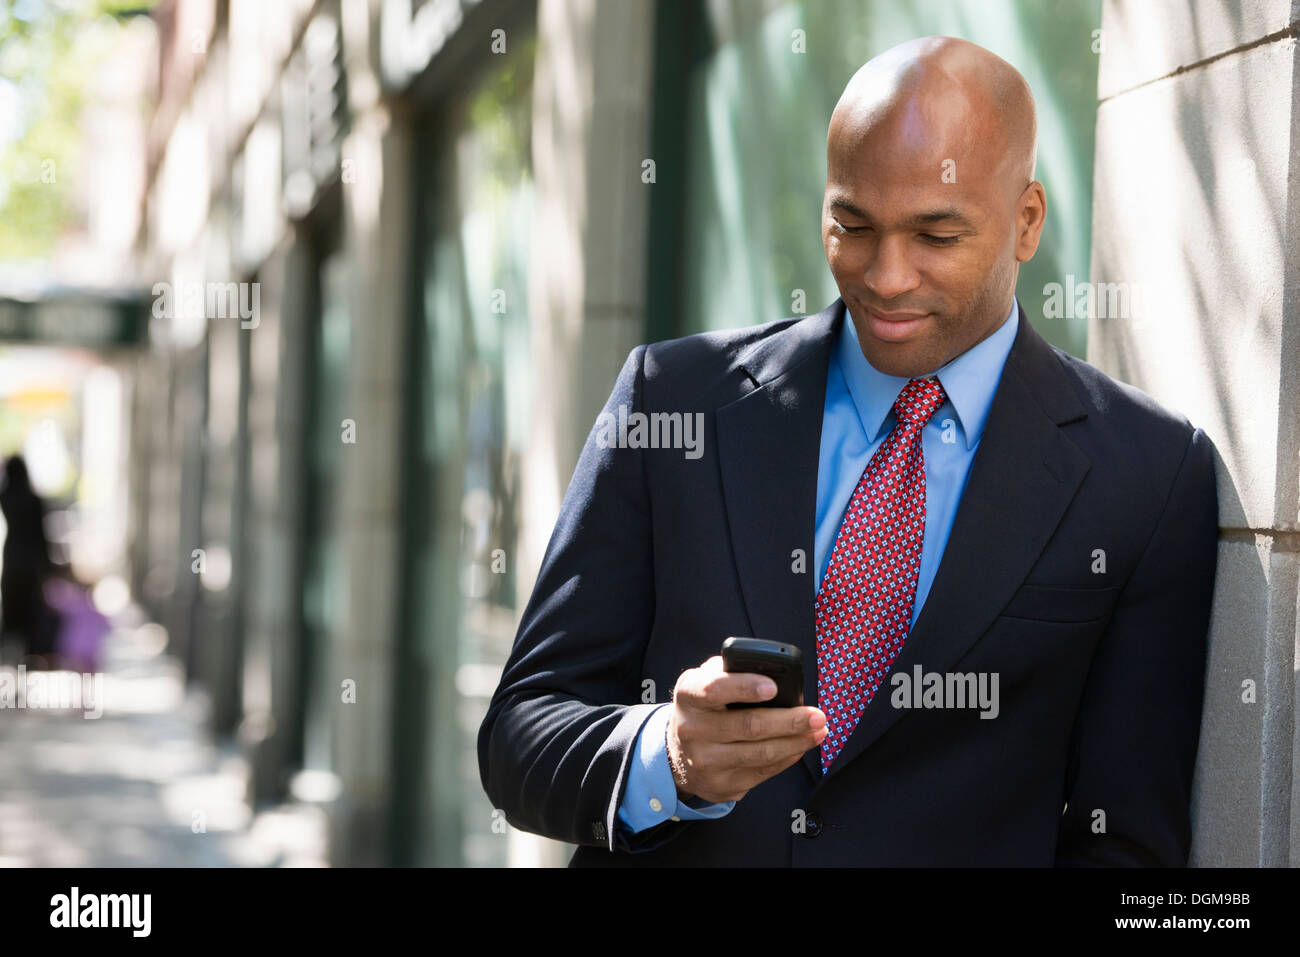 Business people. A businessman in a suit and red tie, checking his phone. - Stock Image